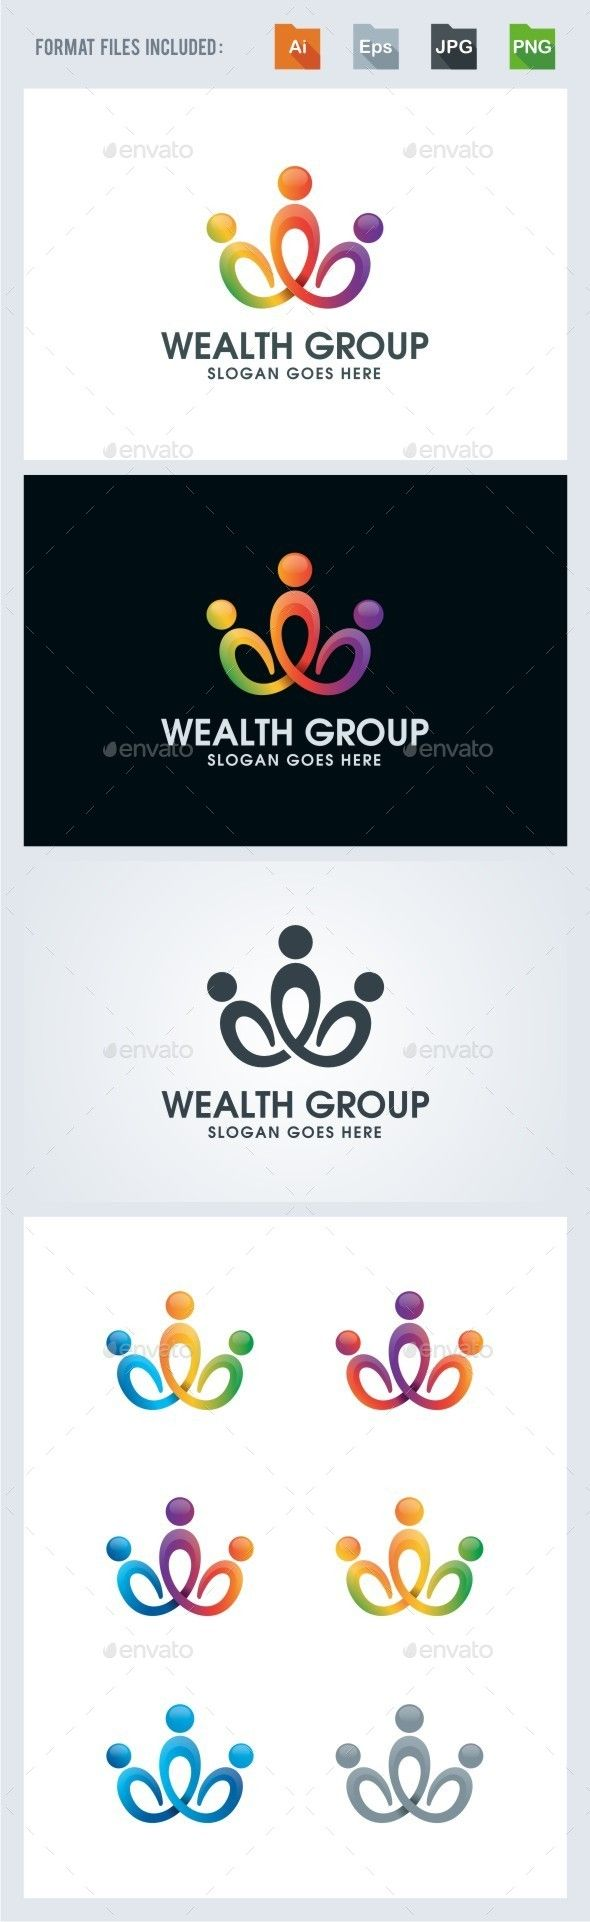 Wealth Group - Community Logo Template Vector EPS, AI. Download here: http://graphicriver.net/item/wealth-group-community-logo-template/12631396?ref=ksioks